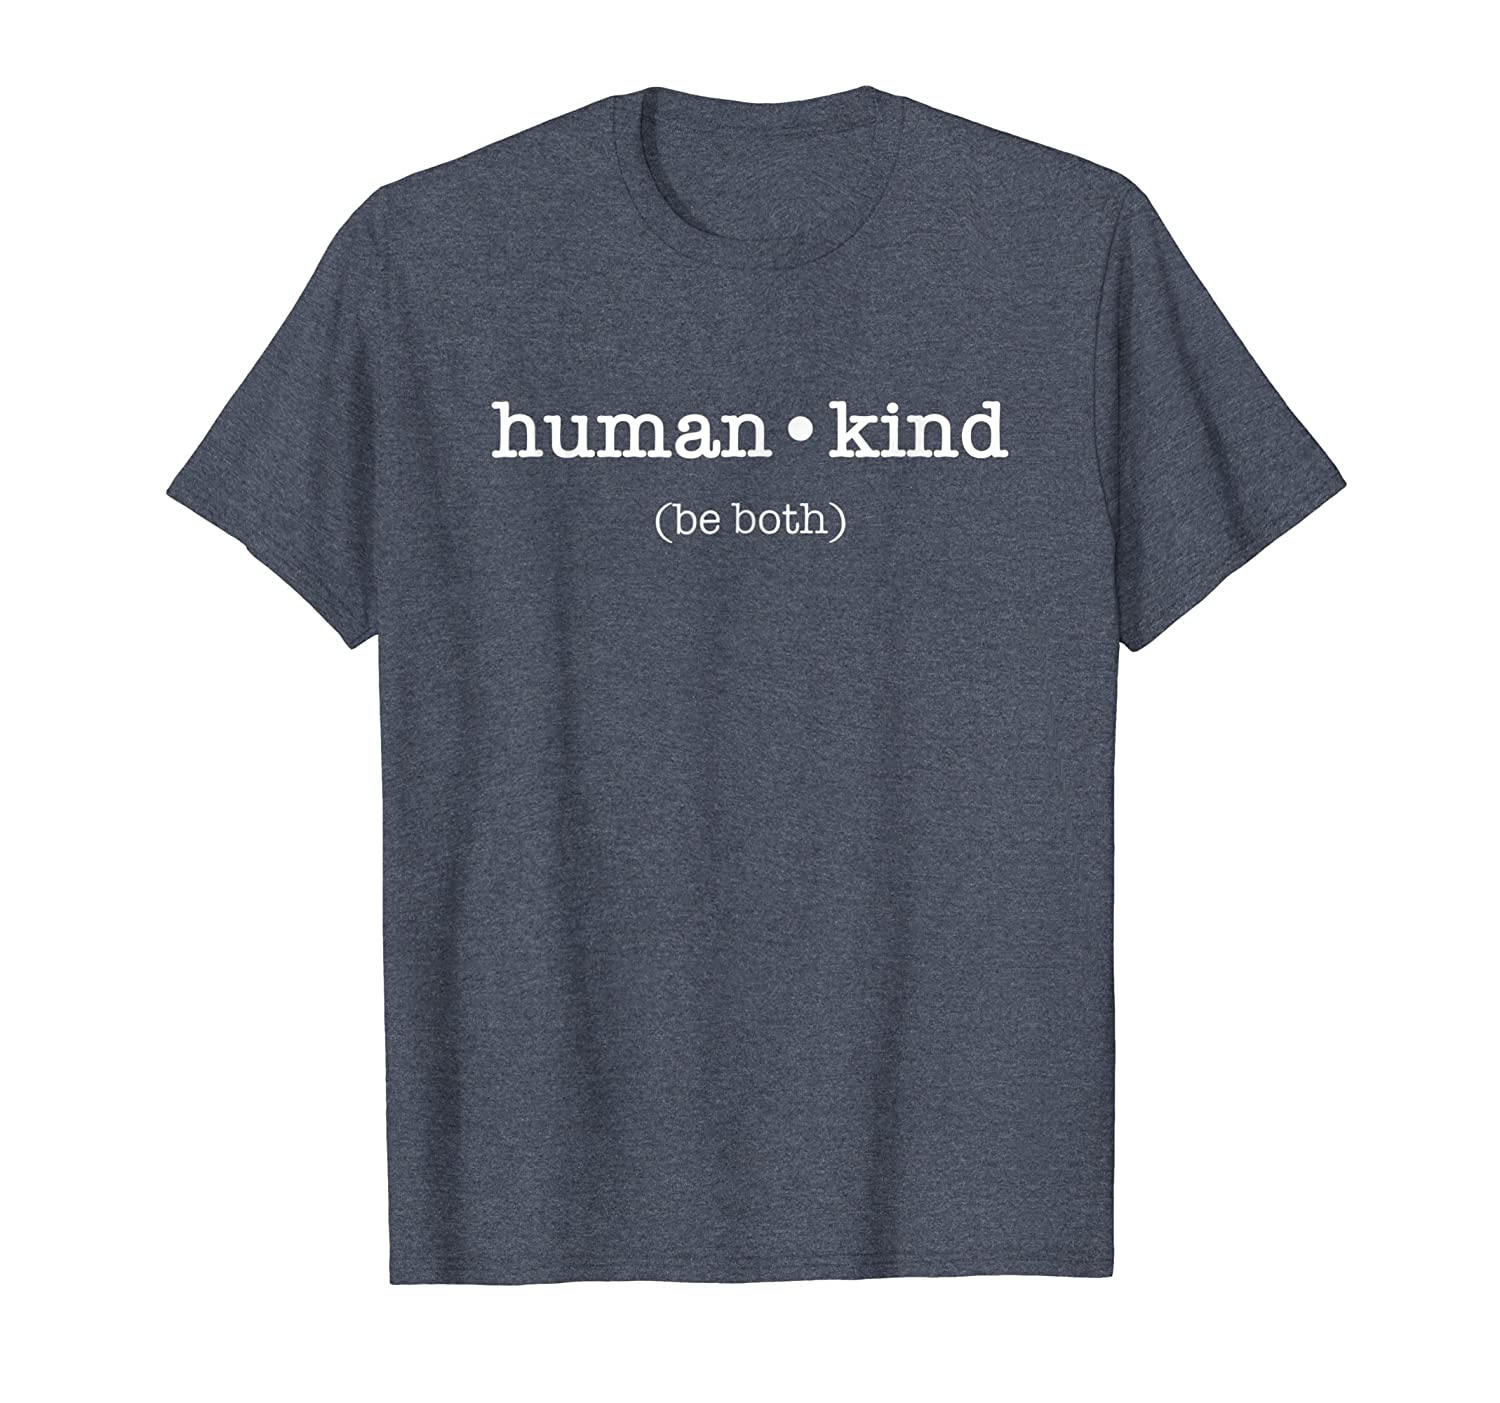 Kindness Tee human kind (be both) T Shirt by MCMA-fa